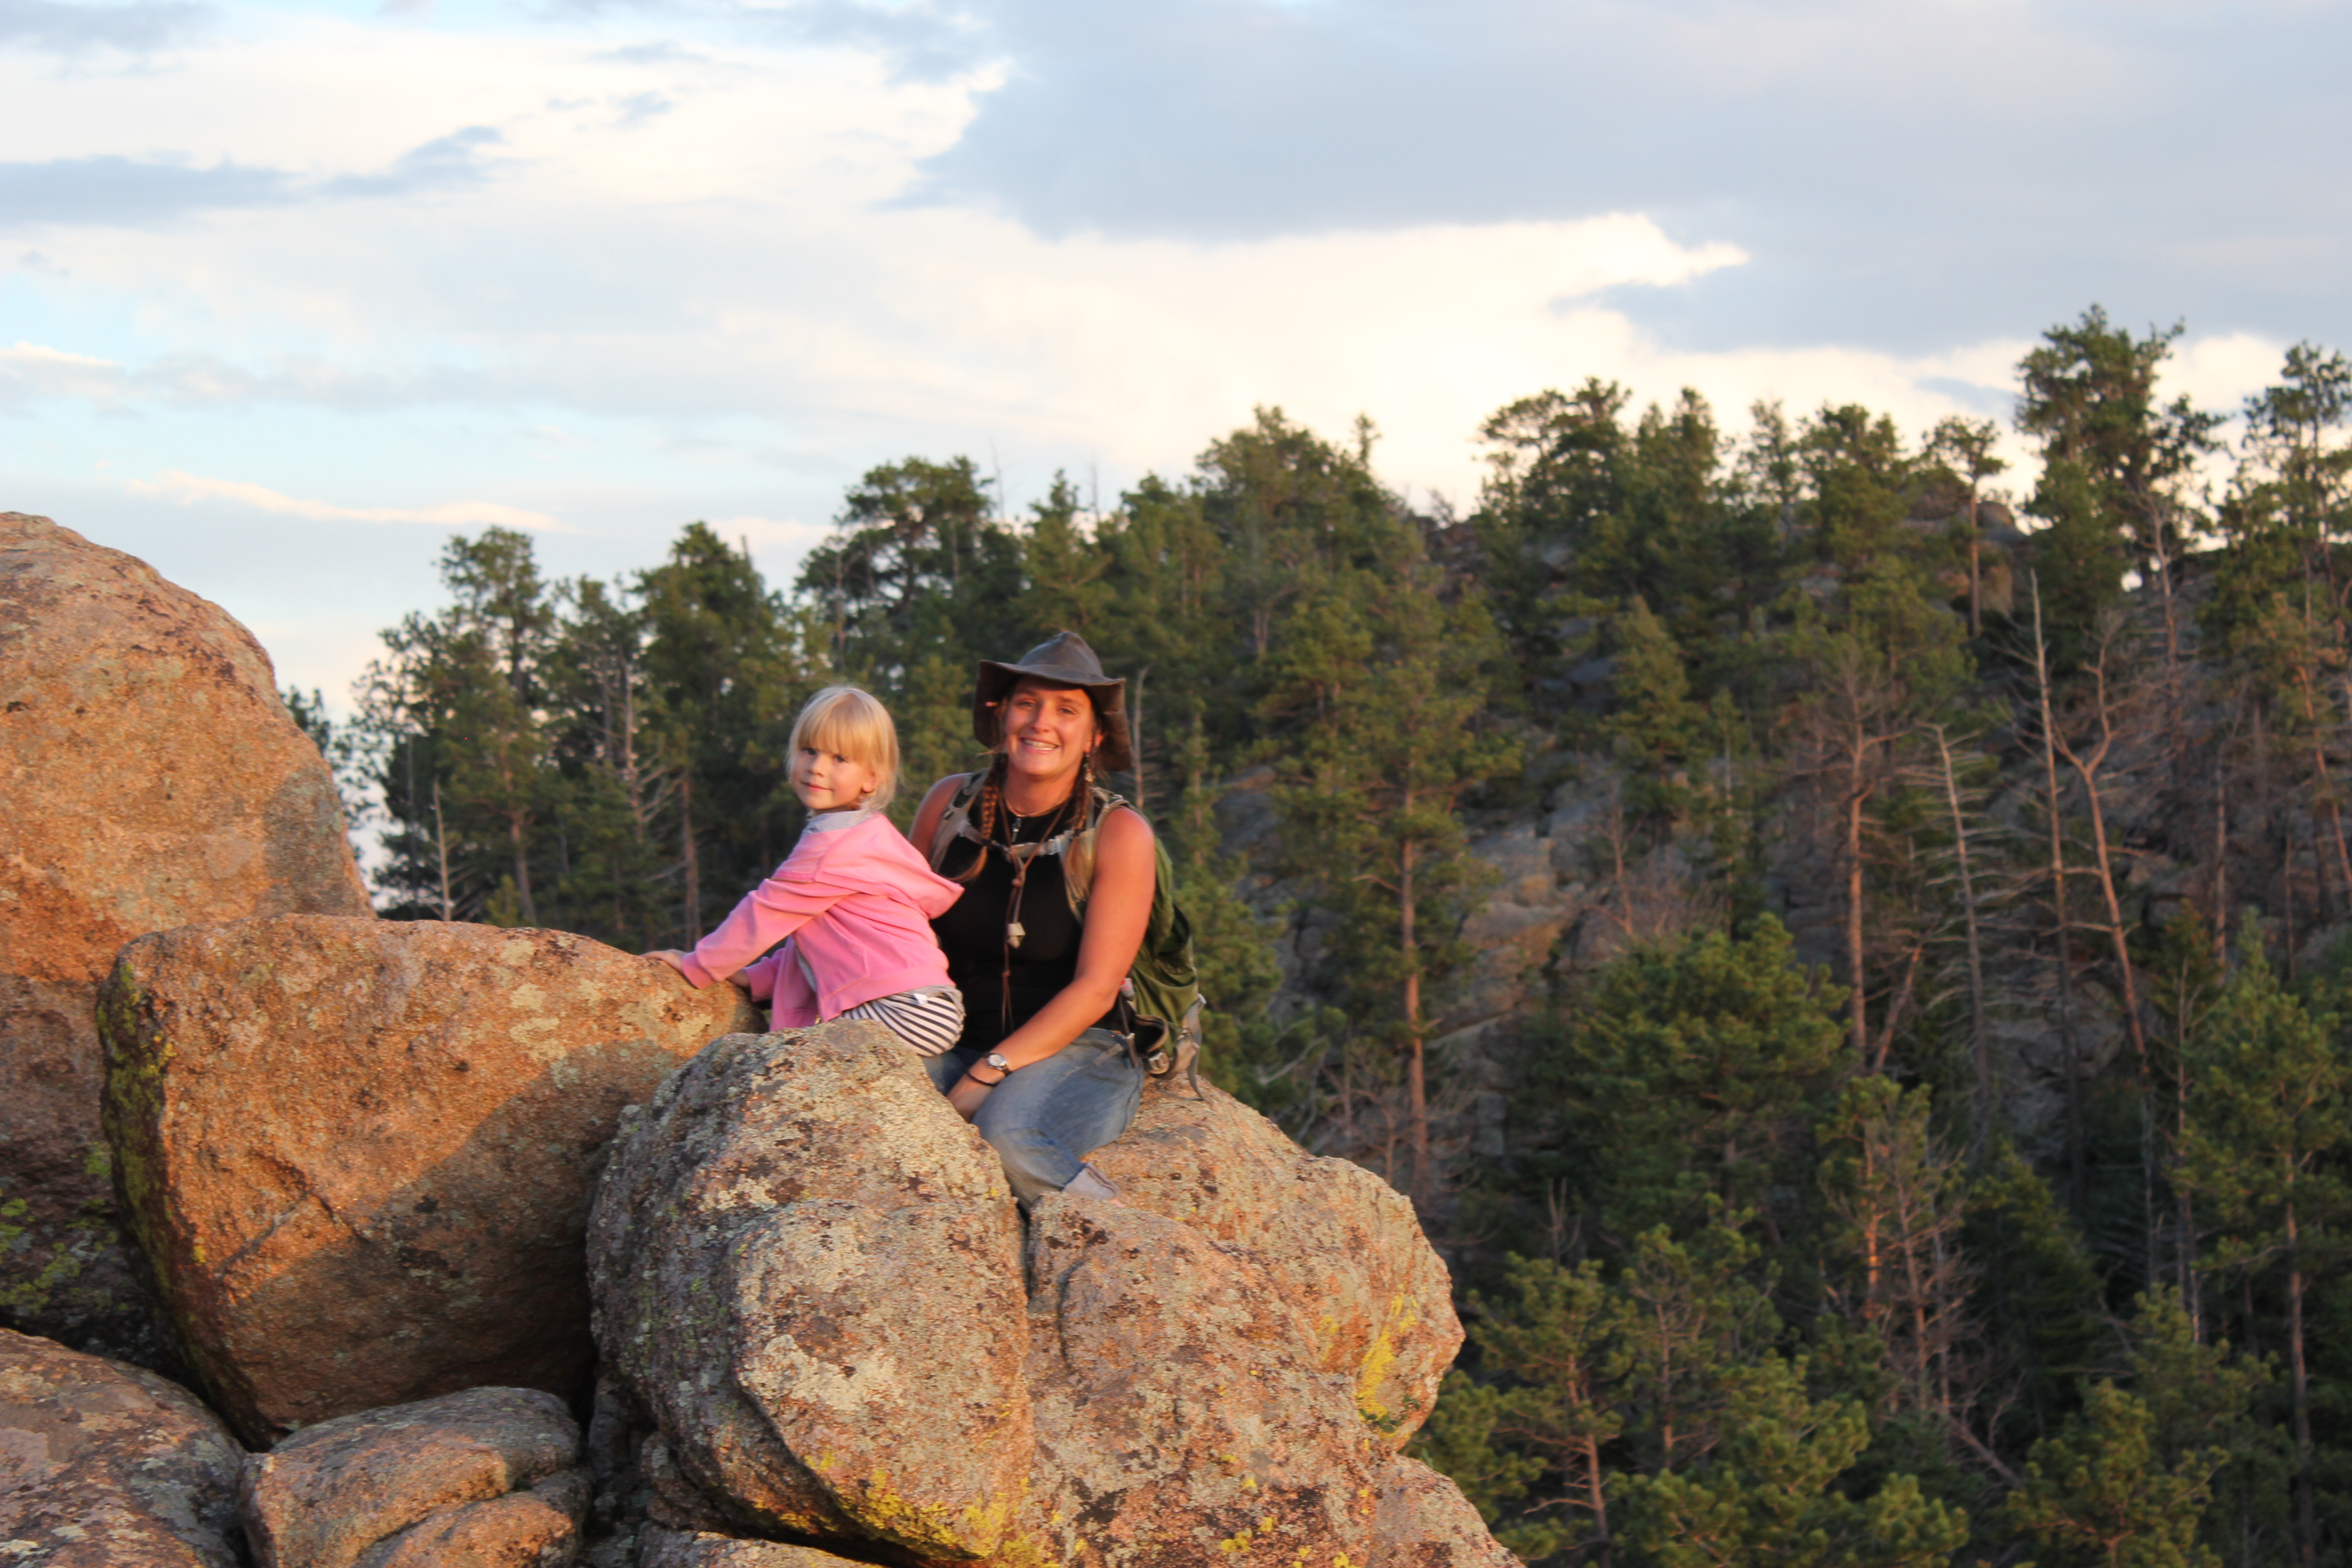 mom-daughter-rock-climbing.jpg